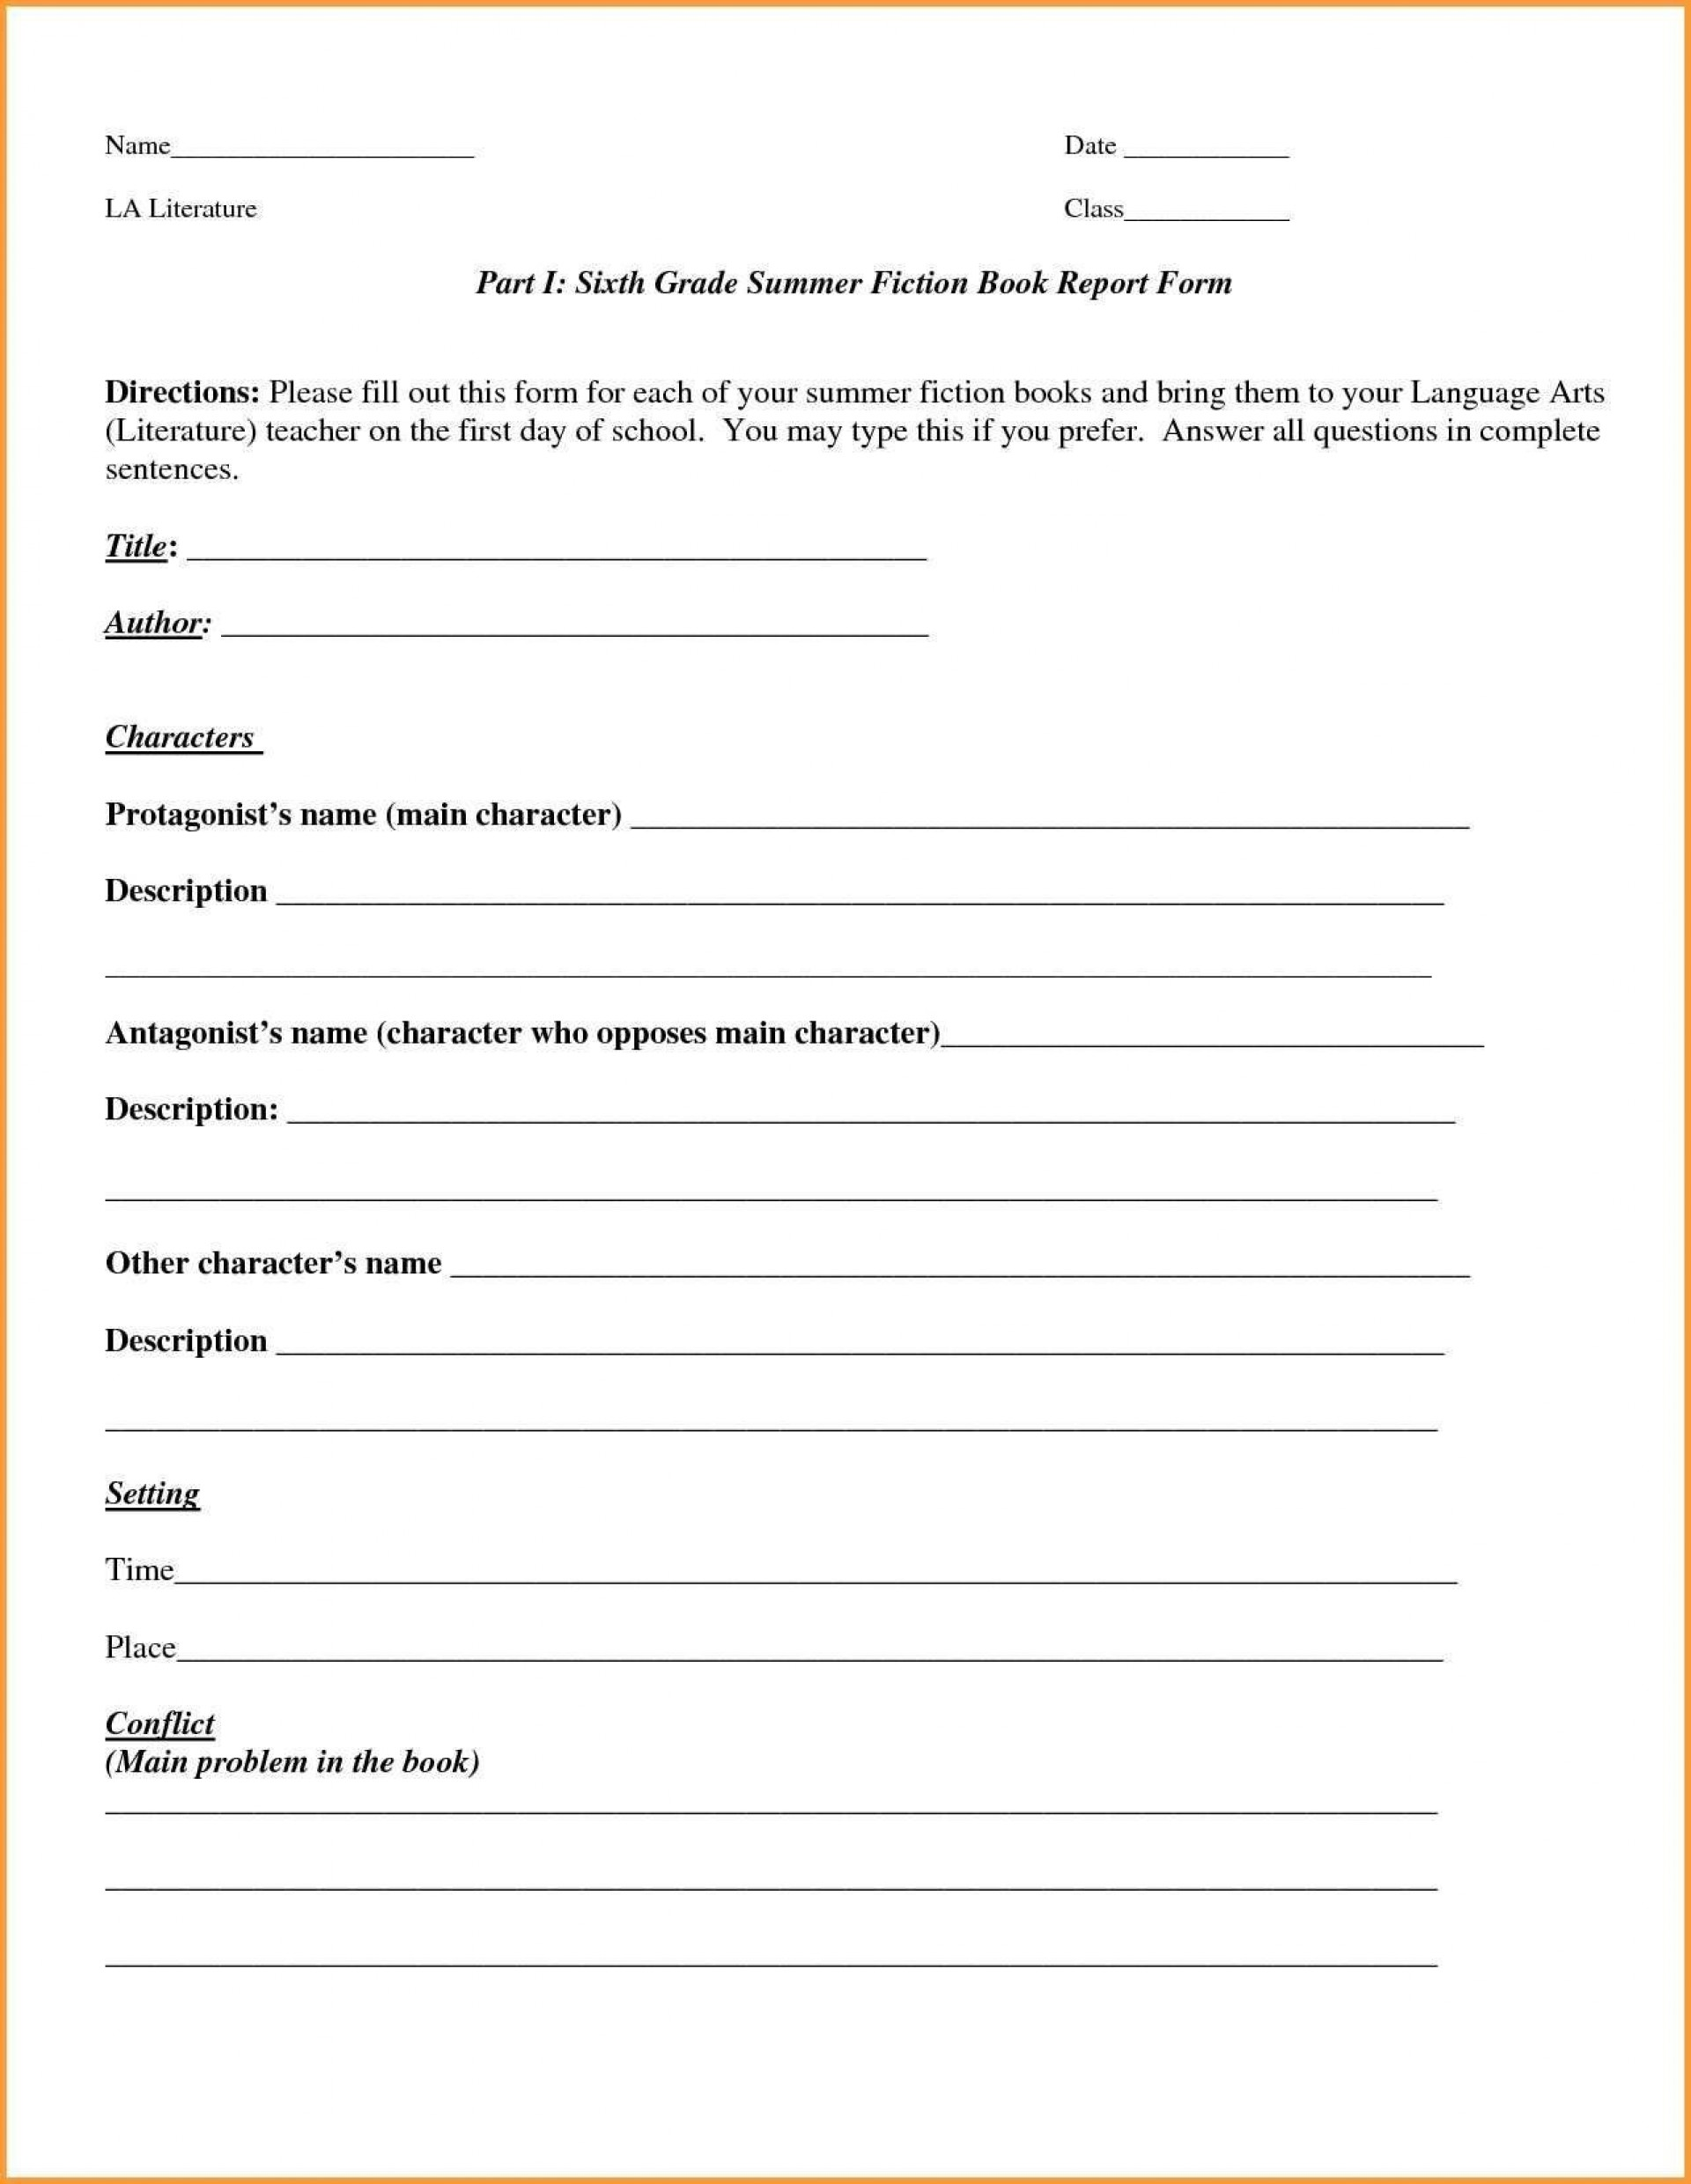 001 Breathtaking Blank Book Report Form 6th Grade Inspiration  Free Printable Template1920